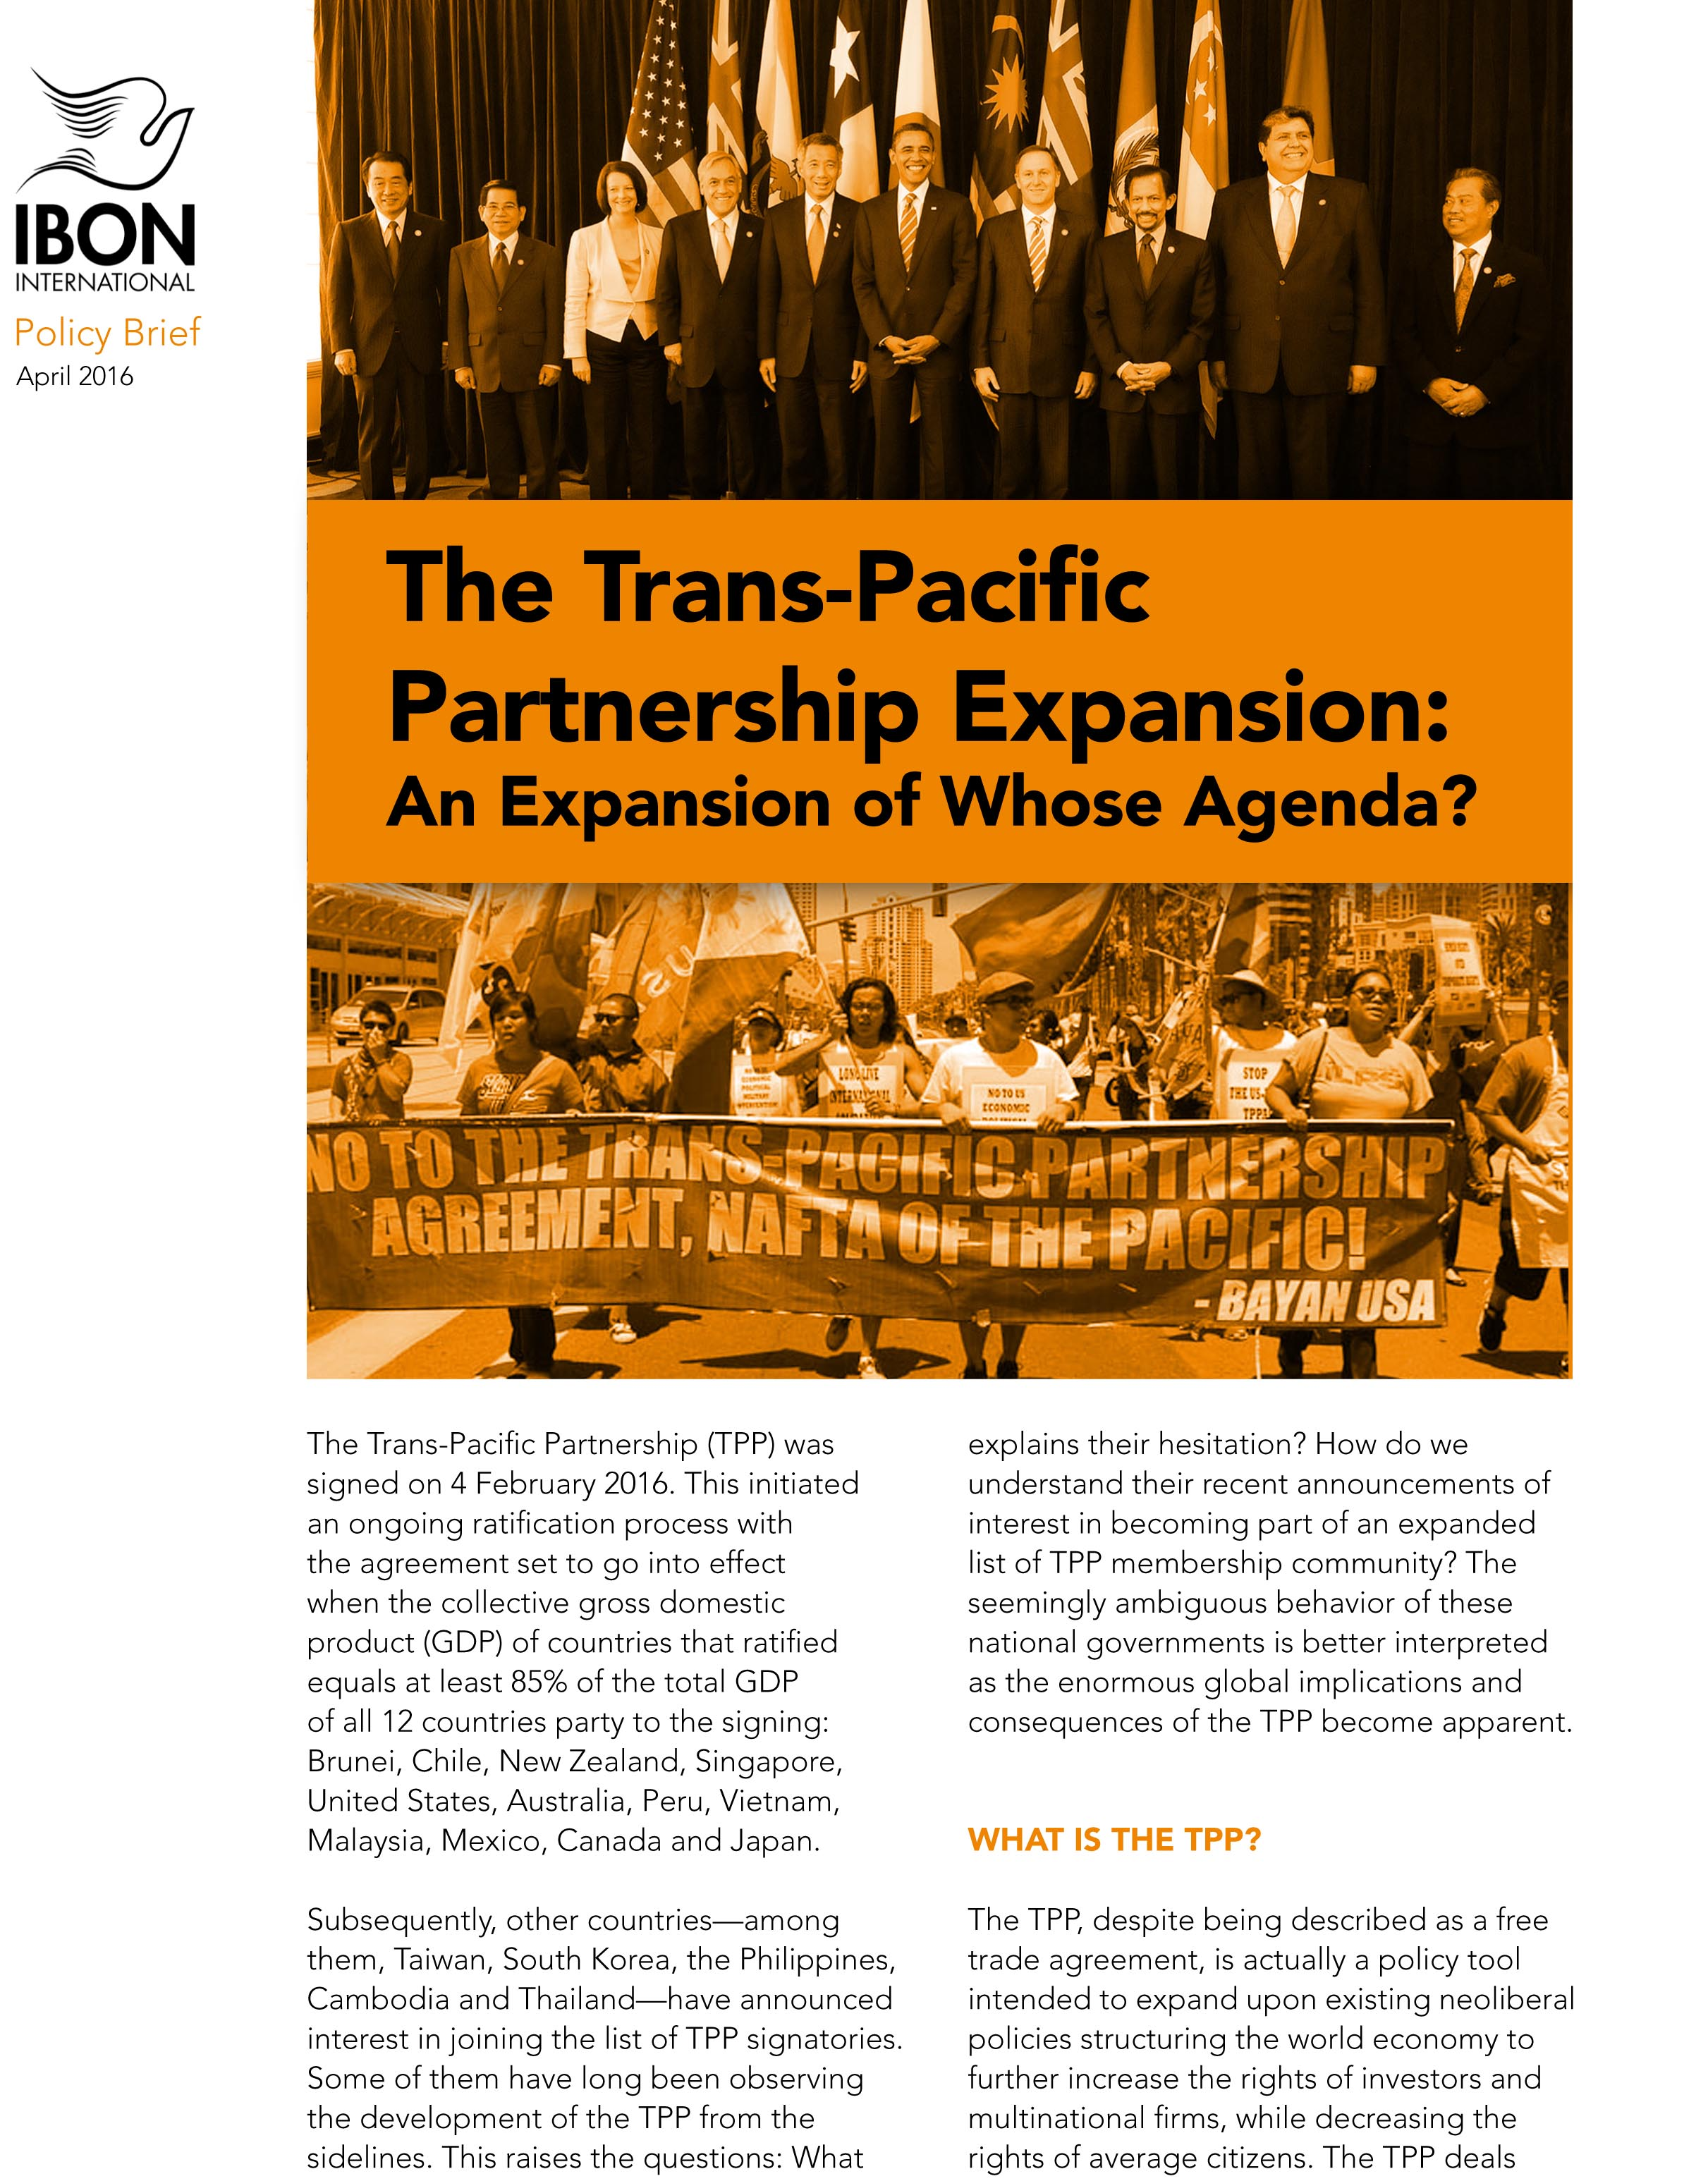 The Trans-Pacific Partnership Expansion: An Expansion of Whose Agenda?